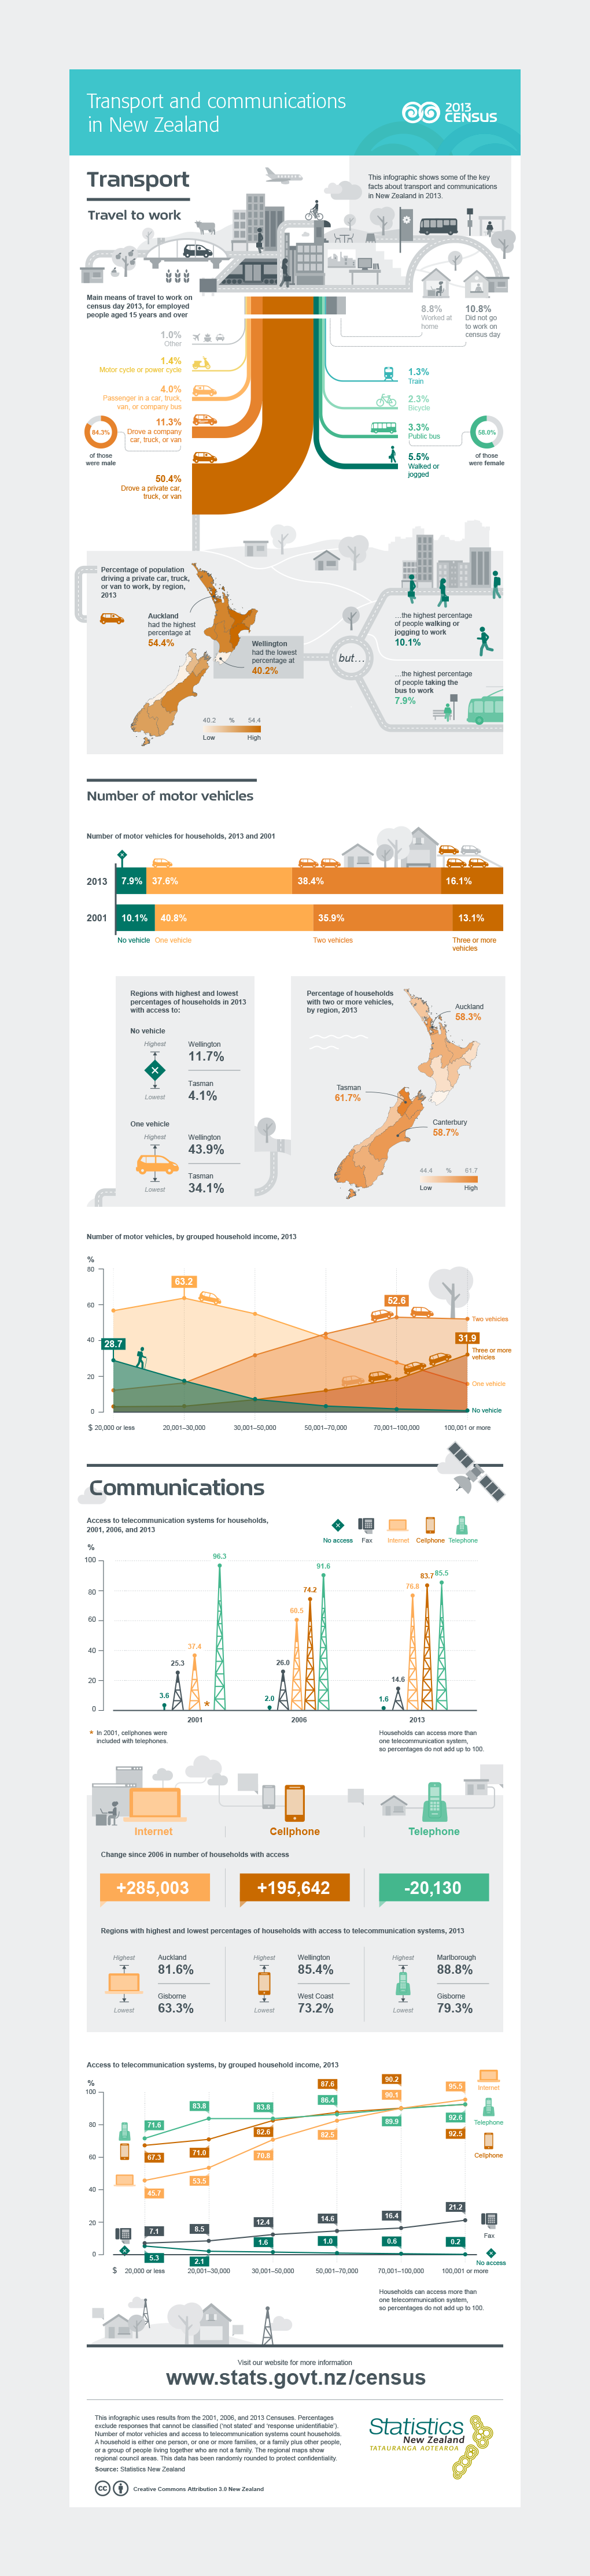 2013Census T&C StatisticsNZ Dmprk